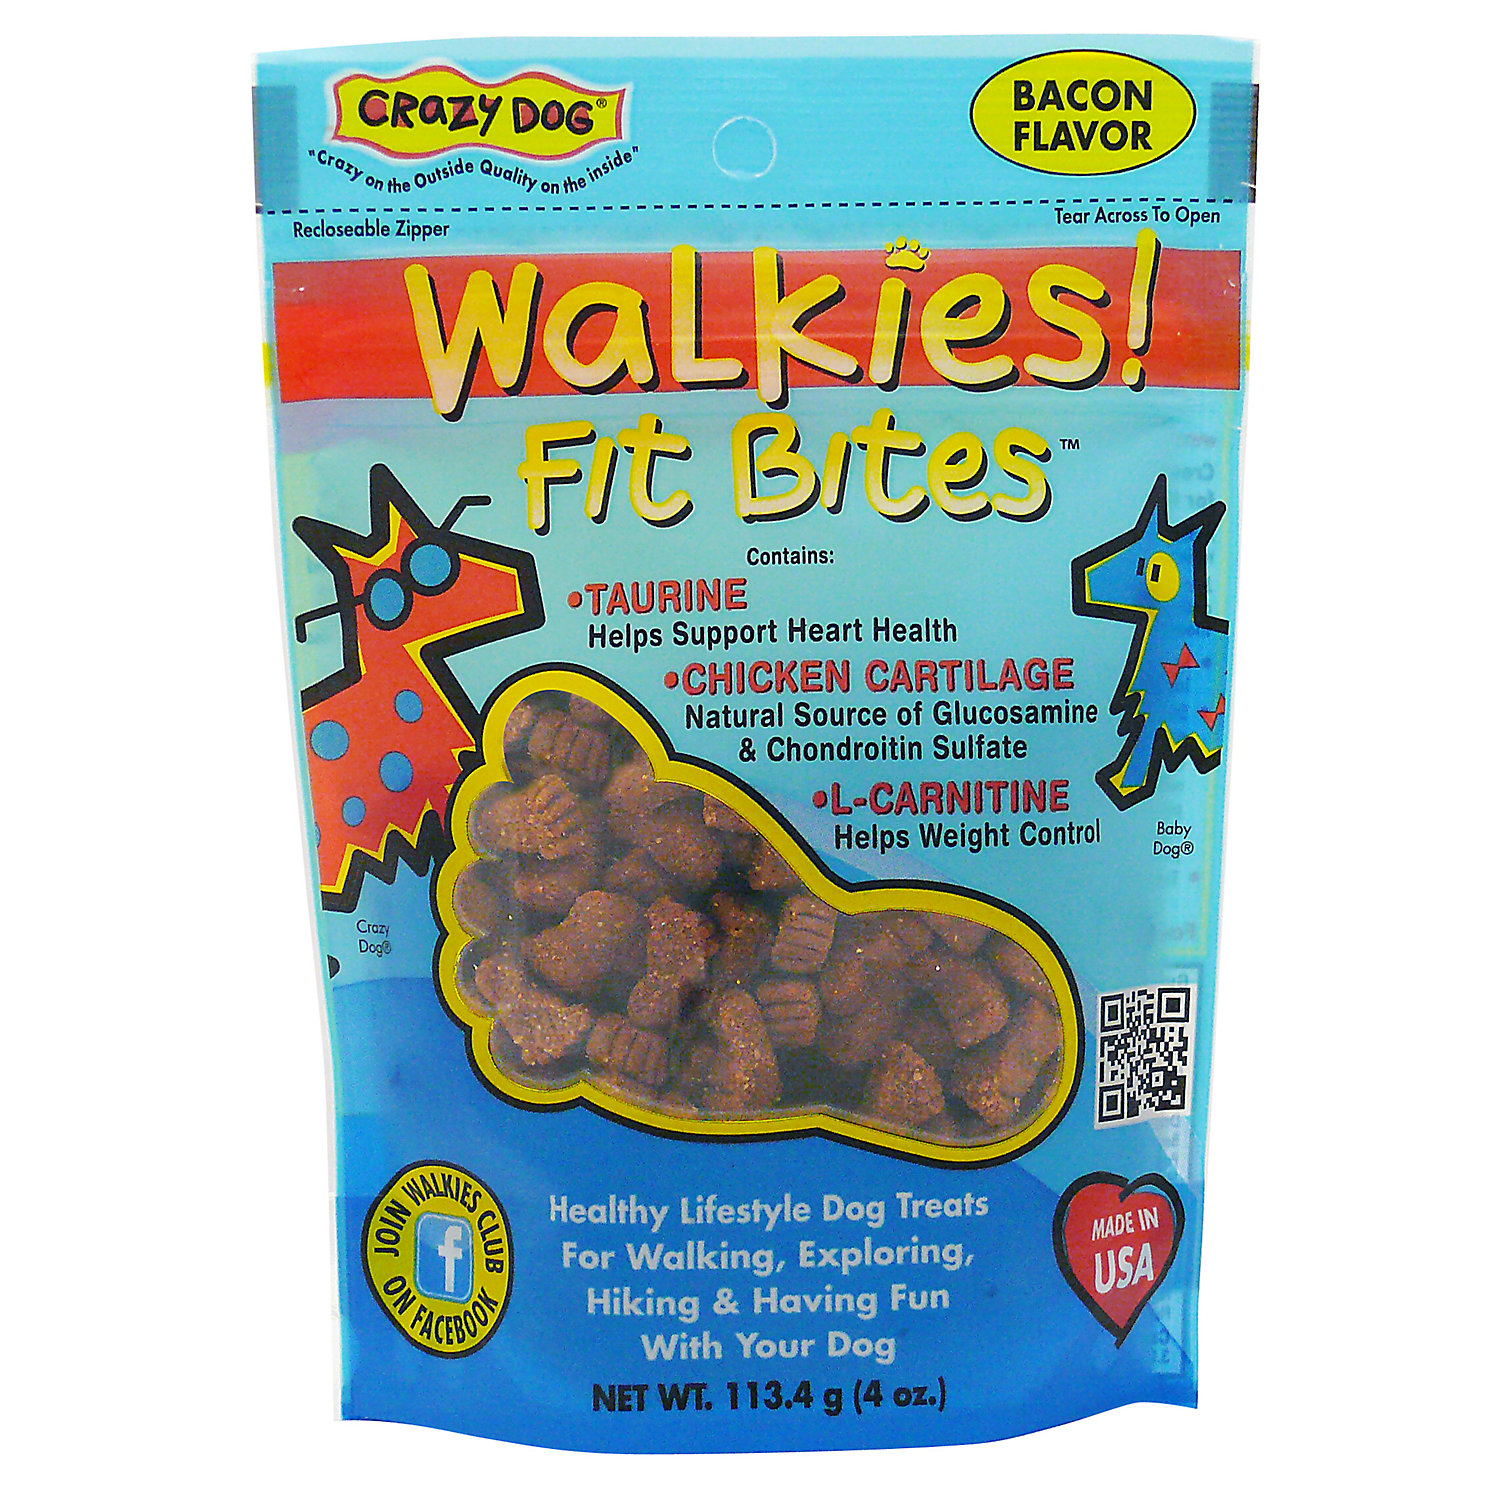 Crazy Dog Walkies Fit Bites Bacon Dog Treats 4 Oz.